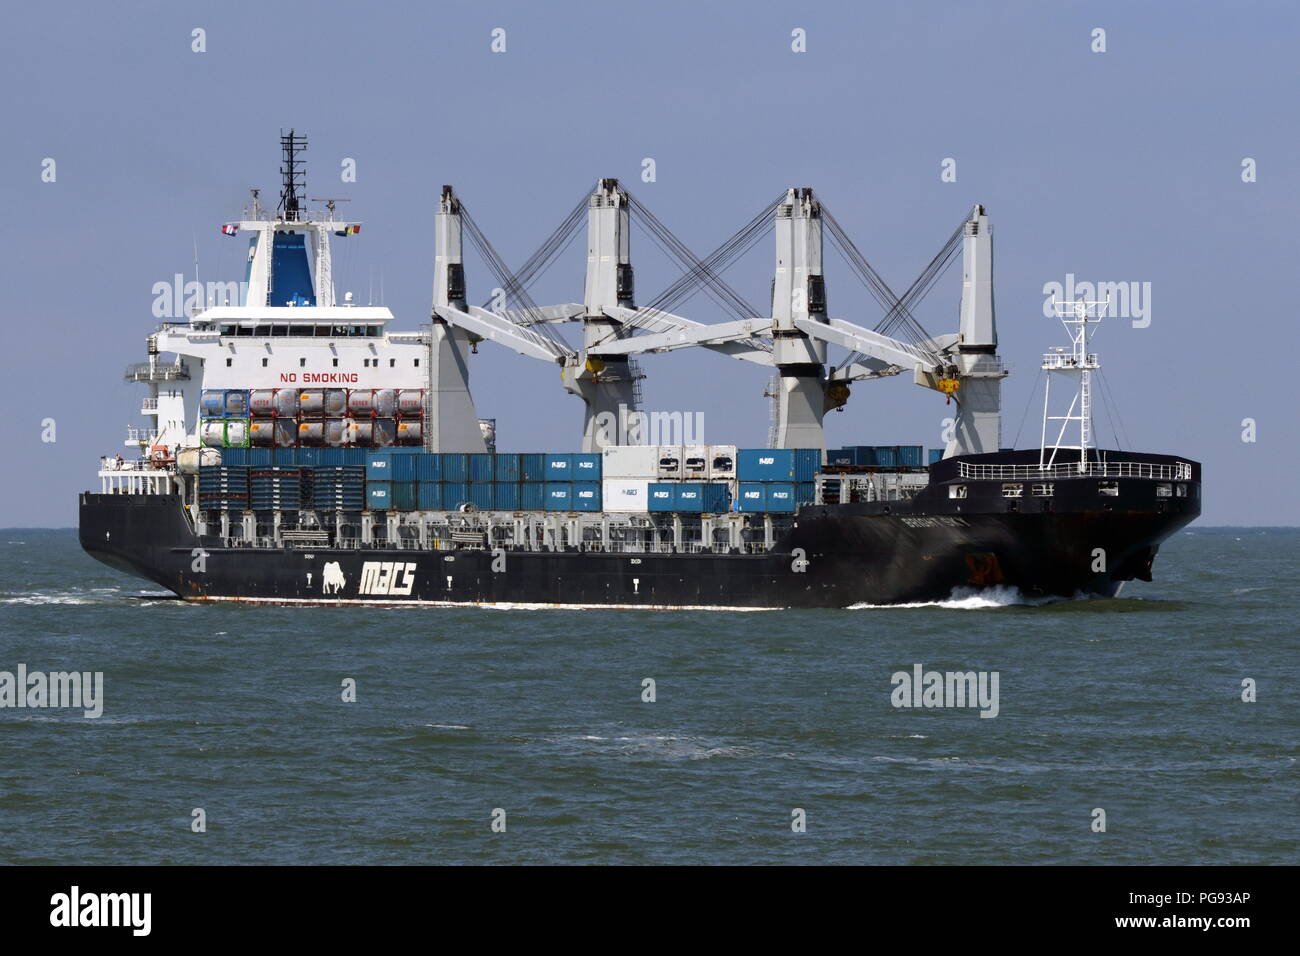 The general cargo ship Bright Sky reached on 13 July 2018 the port of Rotterdam. - Stock Image